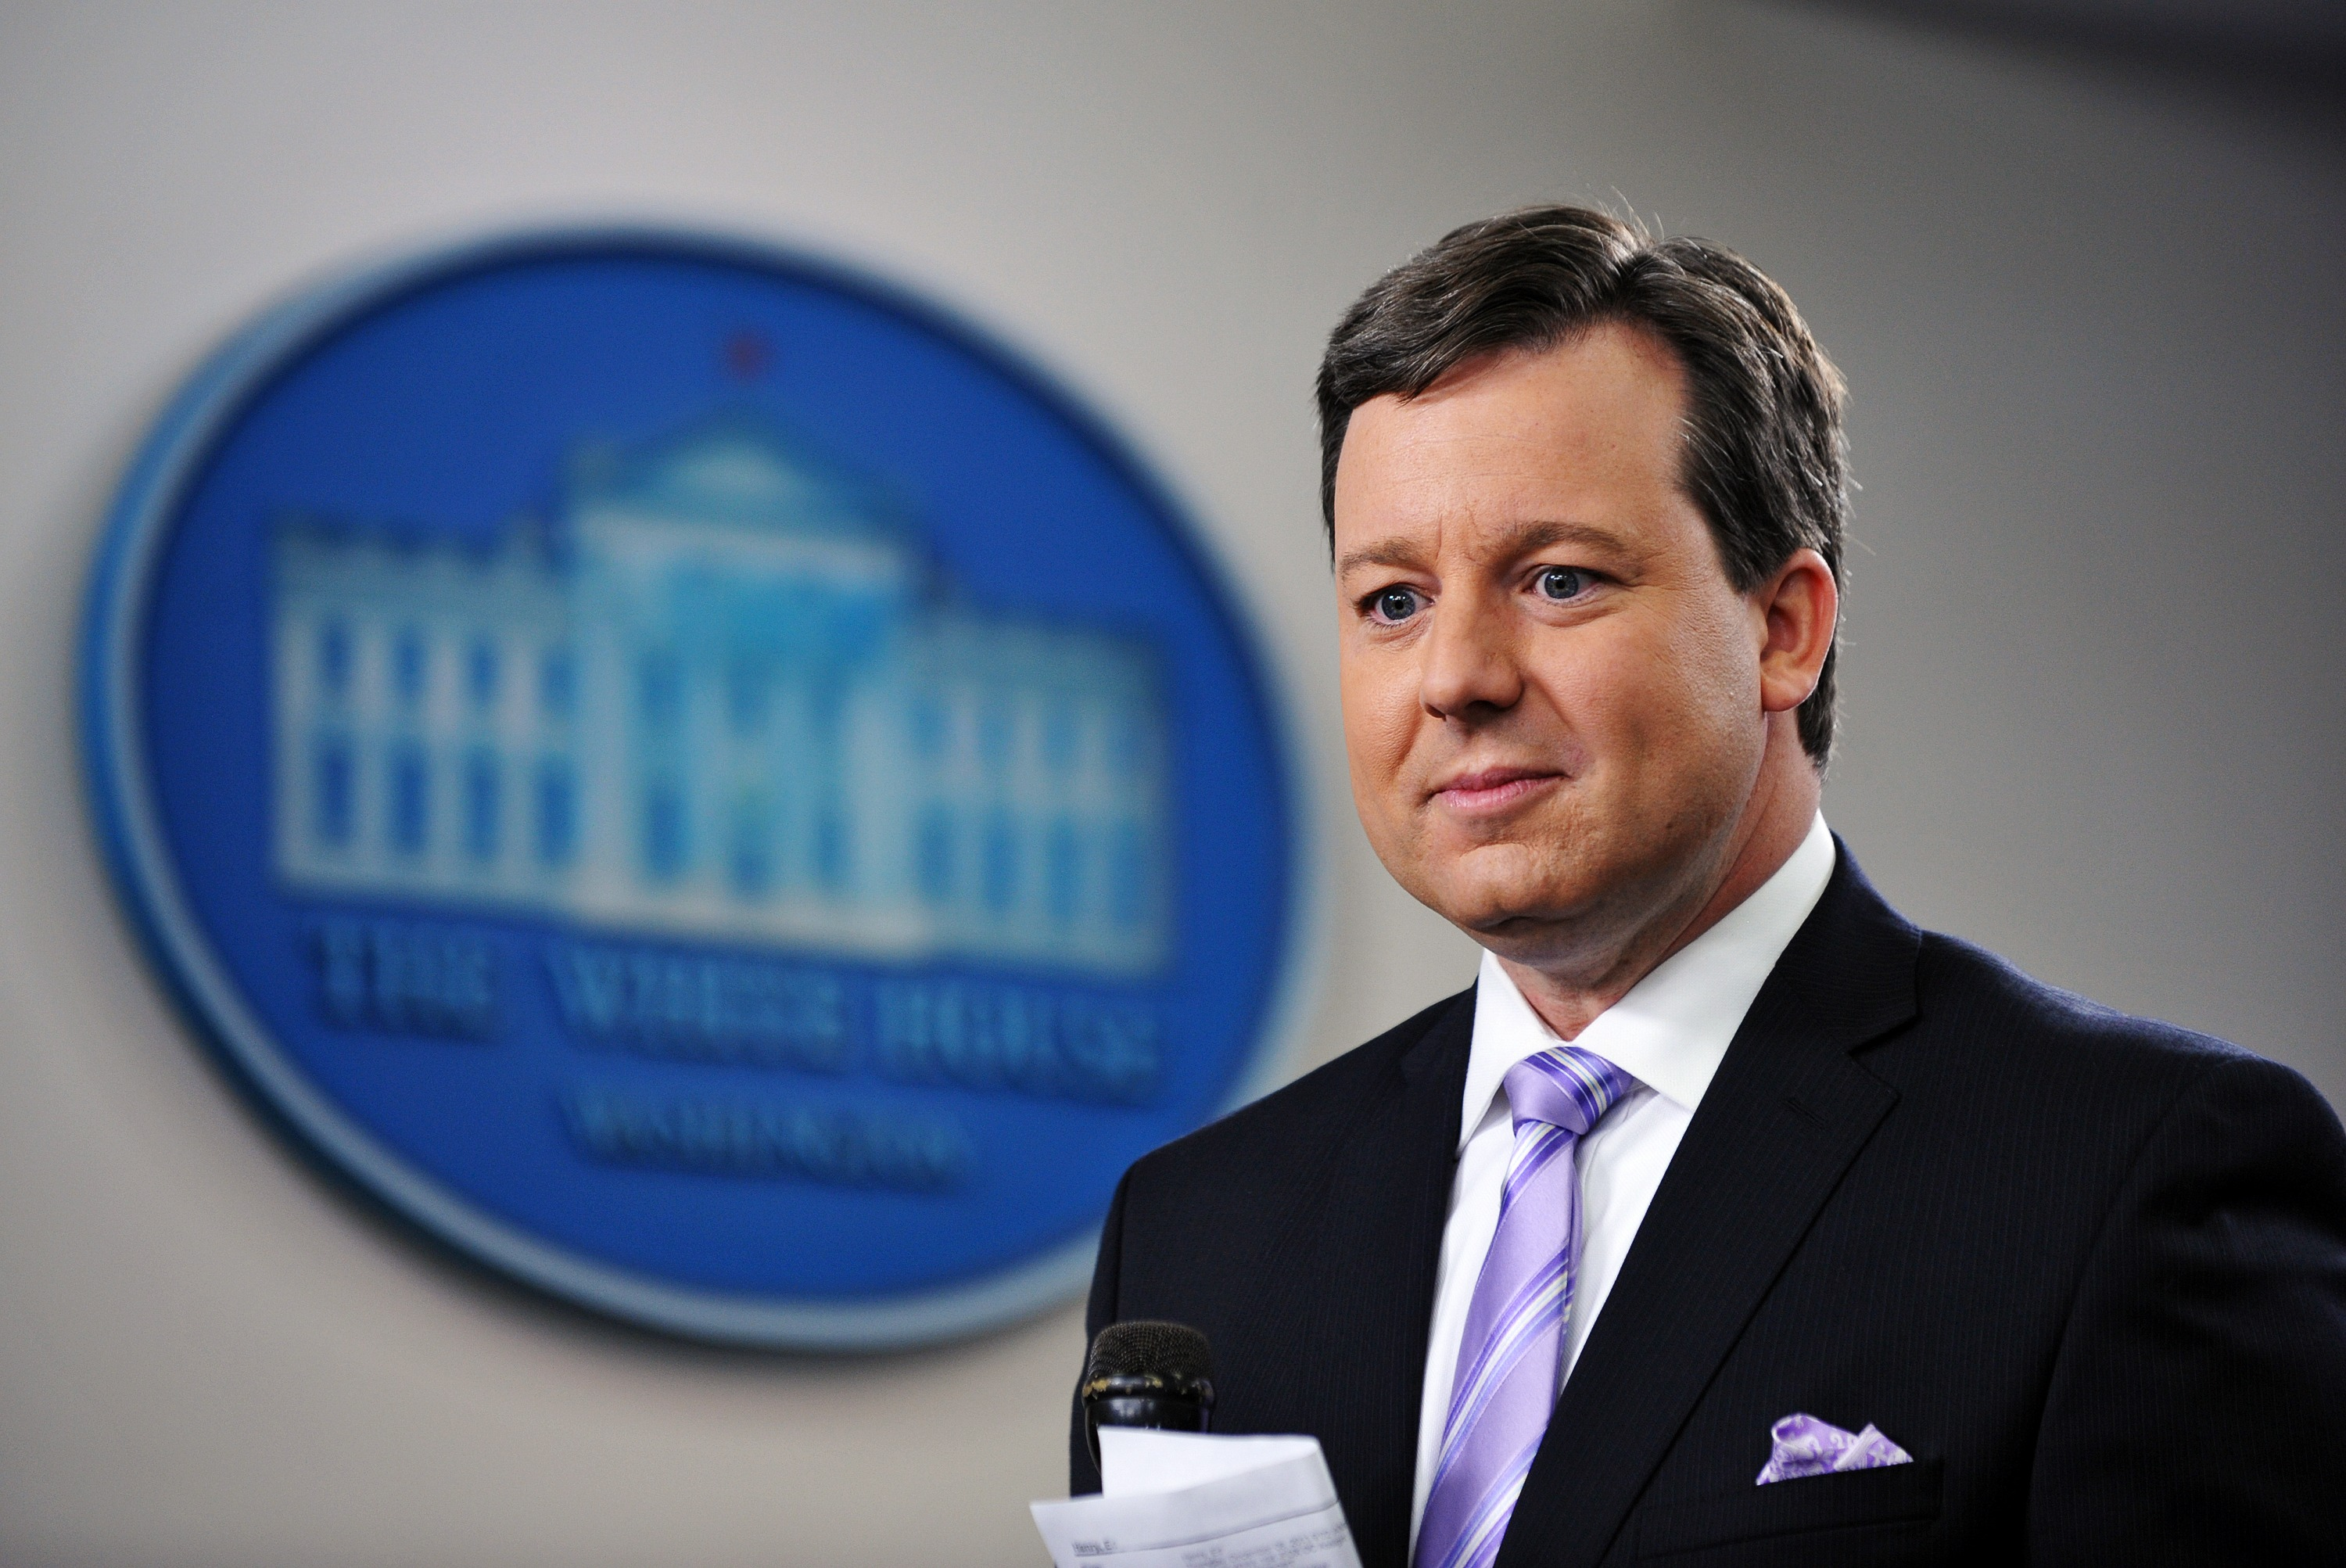 Fox News's Ed Henry in the Brady Briefing Room of the White House in Washington, D.C. December 8, 2011.